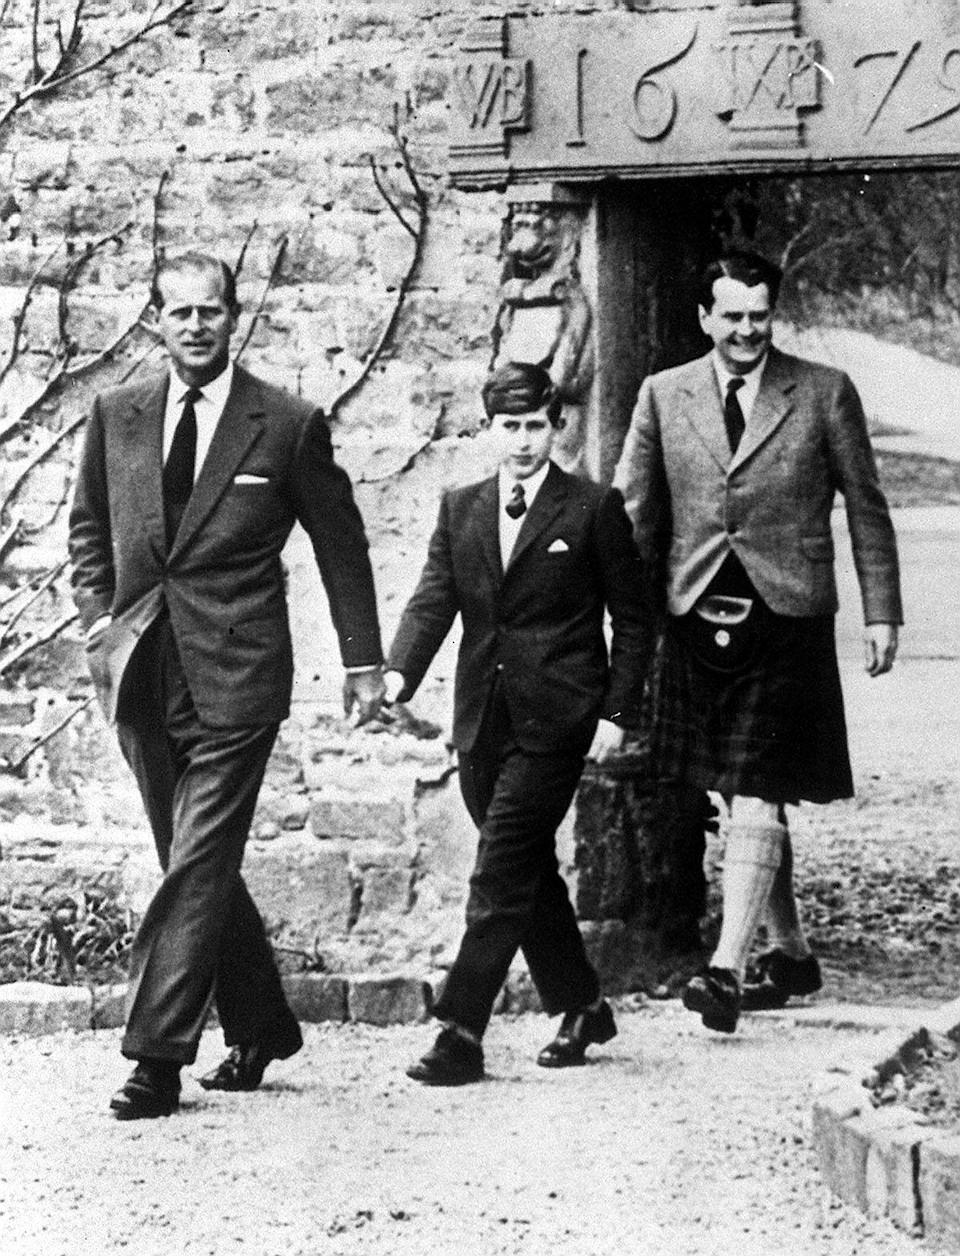 Prince Charles arrives for his first day at Gordonstoun with his father the Duke of Edinburgh (left) and Captain Iain Tennant, Chairman of the Gordonstoun Board of Governors, in 1962. [Photo: PA]